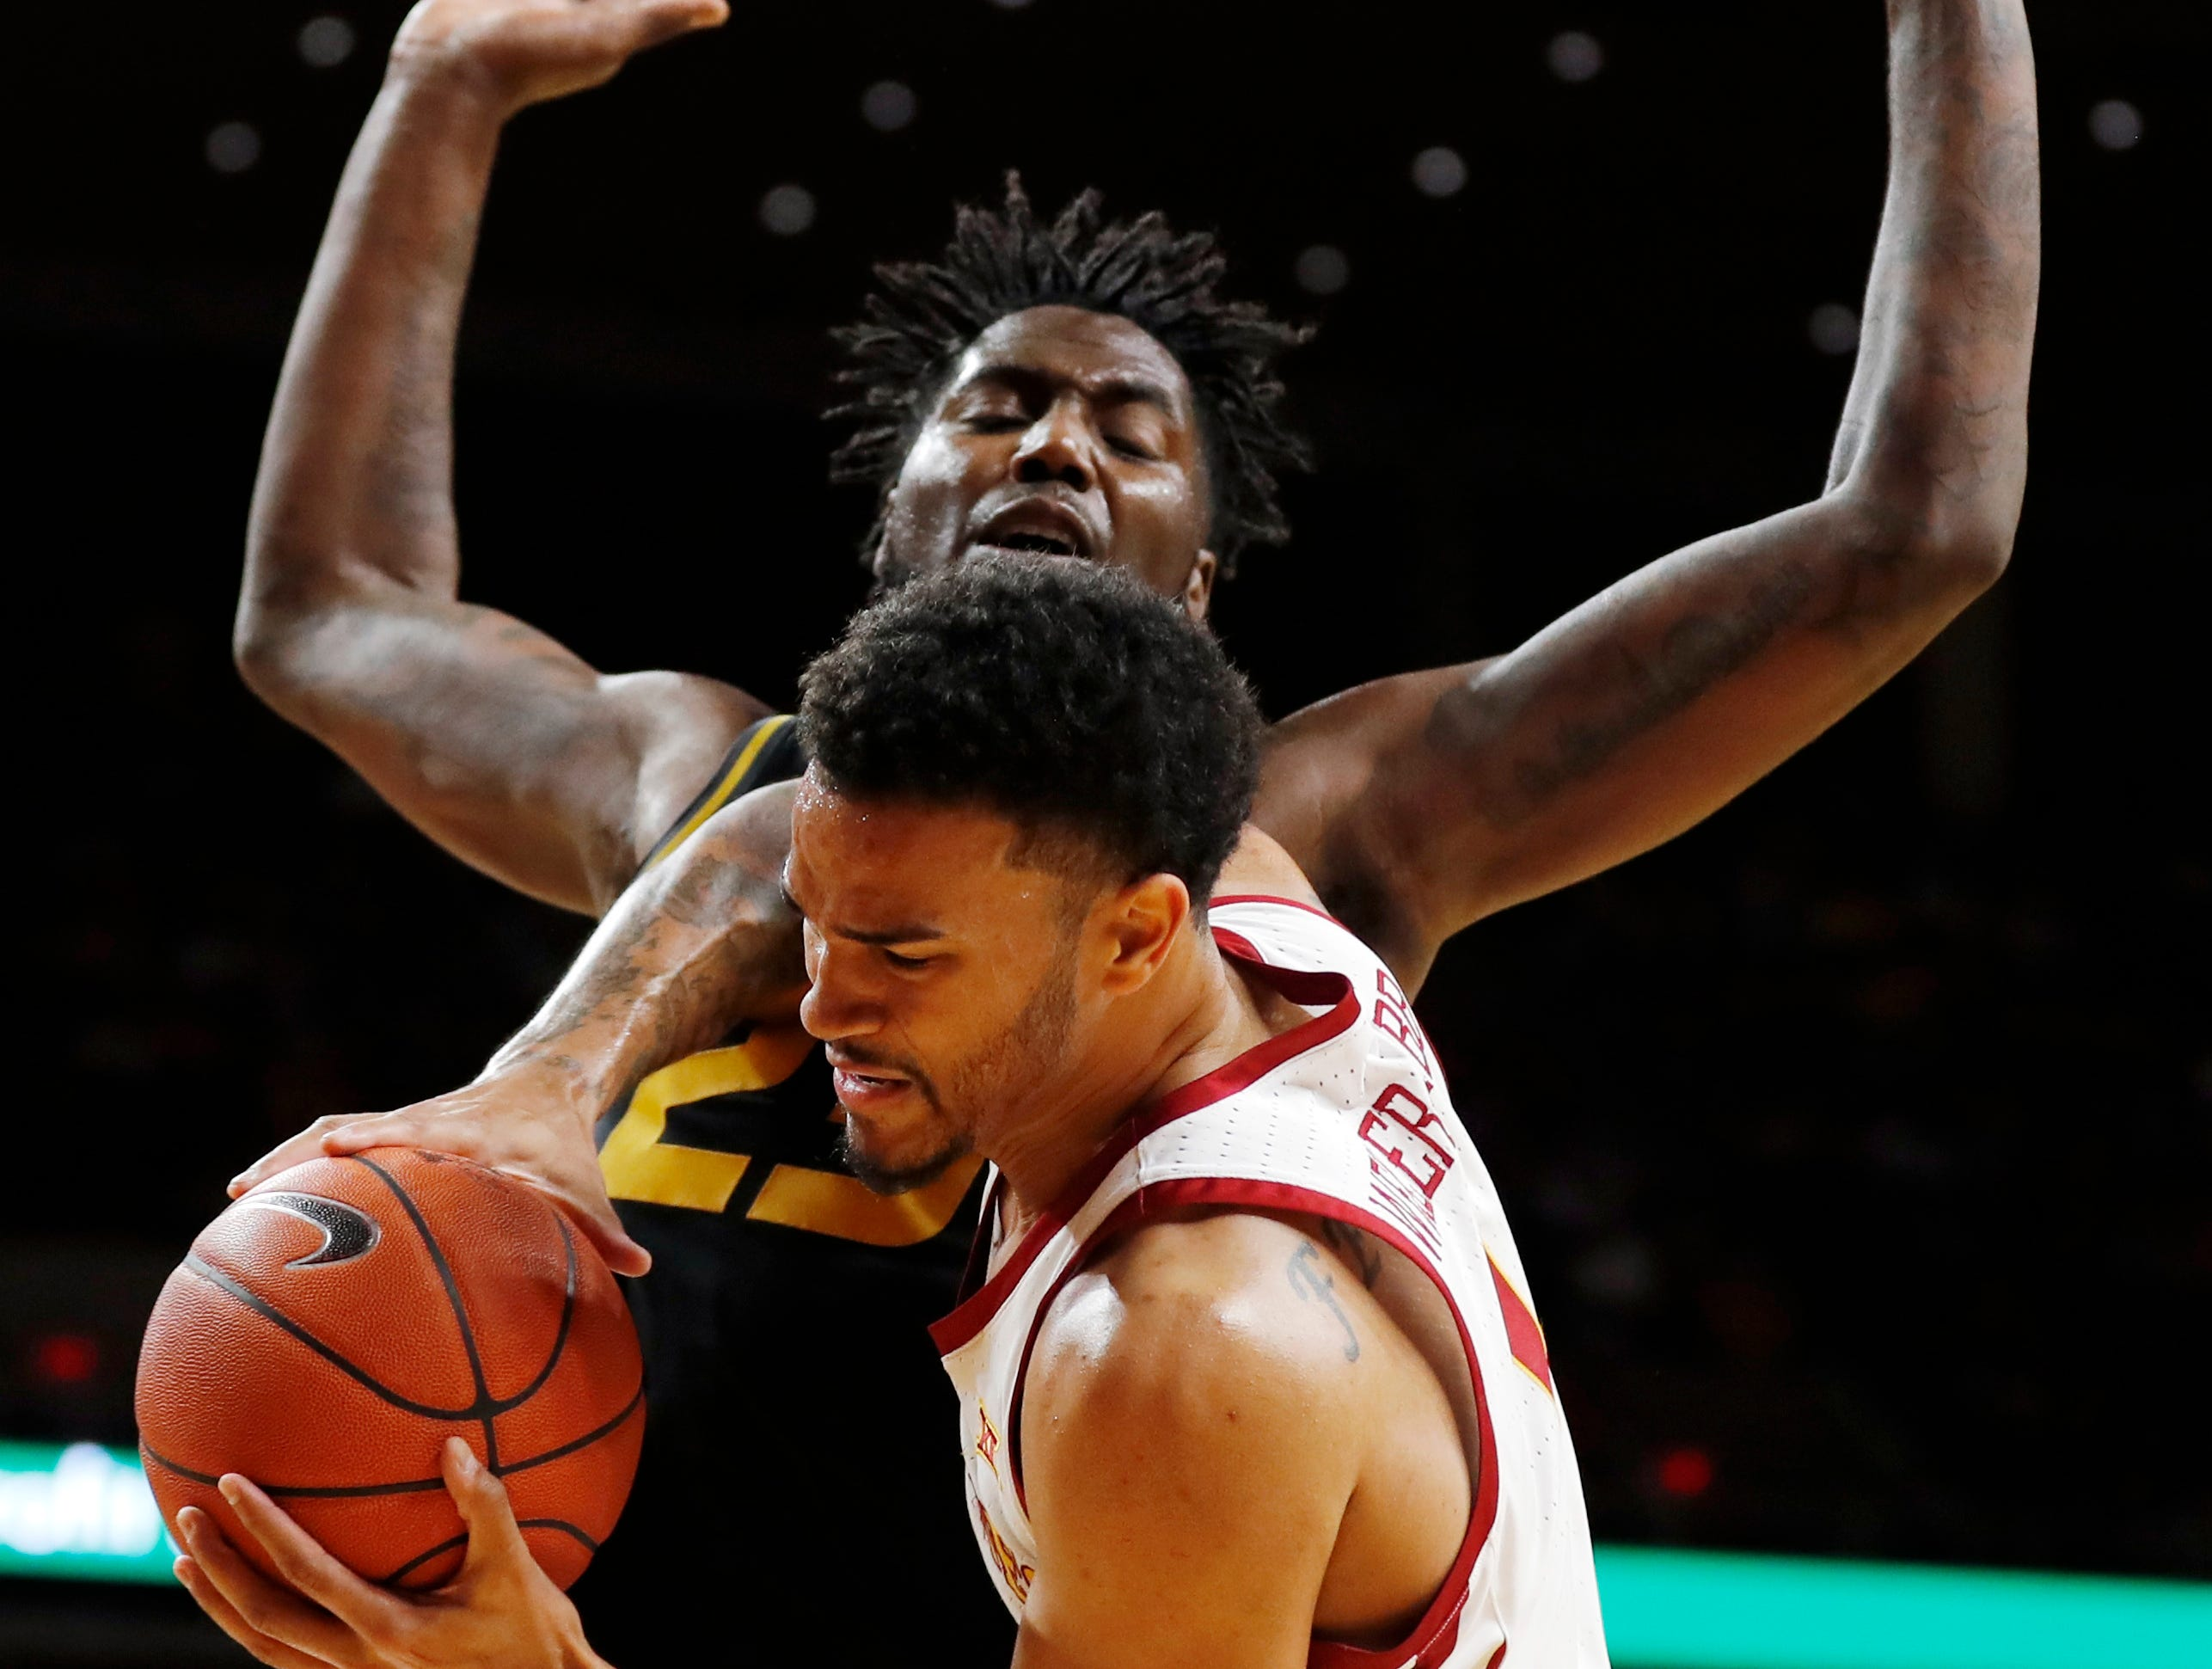 Iowa State guard Nick Weiler-Babb grabs a rebound in front of Missouri forward Jeremiah Tilmon, rear, during the second half of an NCAA college basketball game, Friday, Nov. 9, 2018, in Ames, Iowa. Iowa State won 76-59.